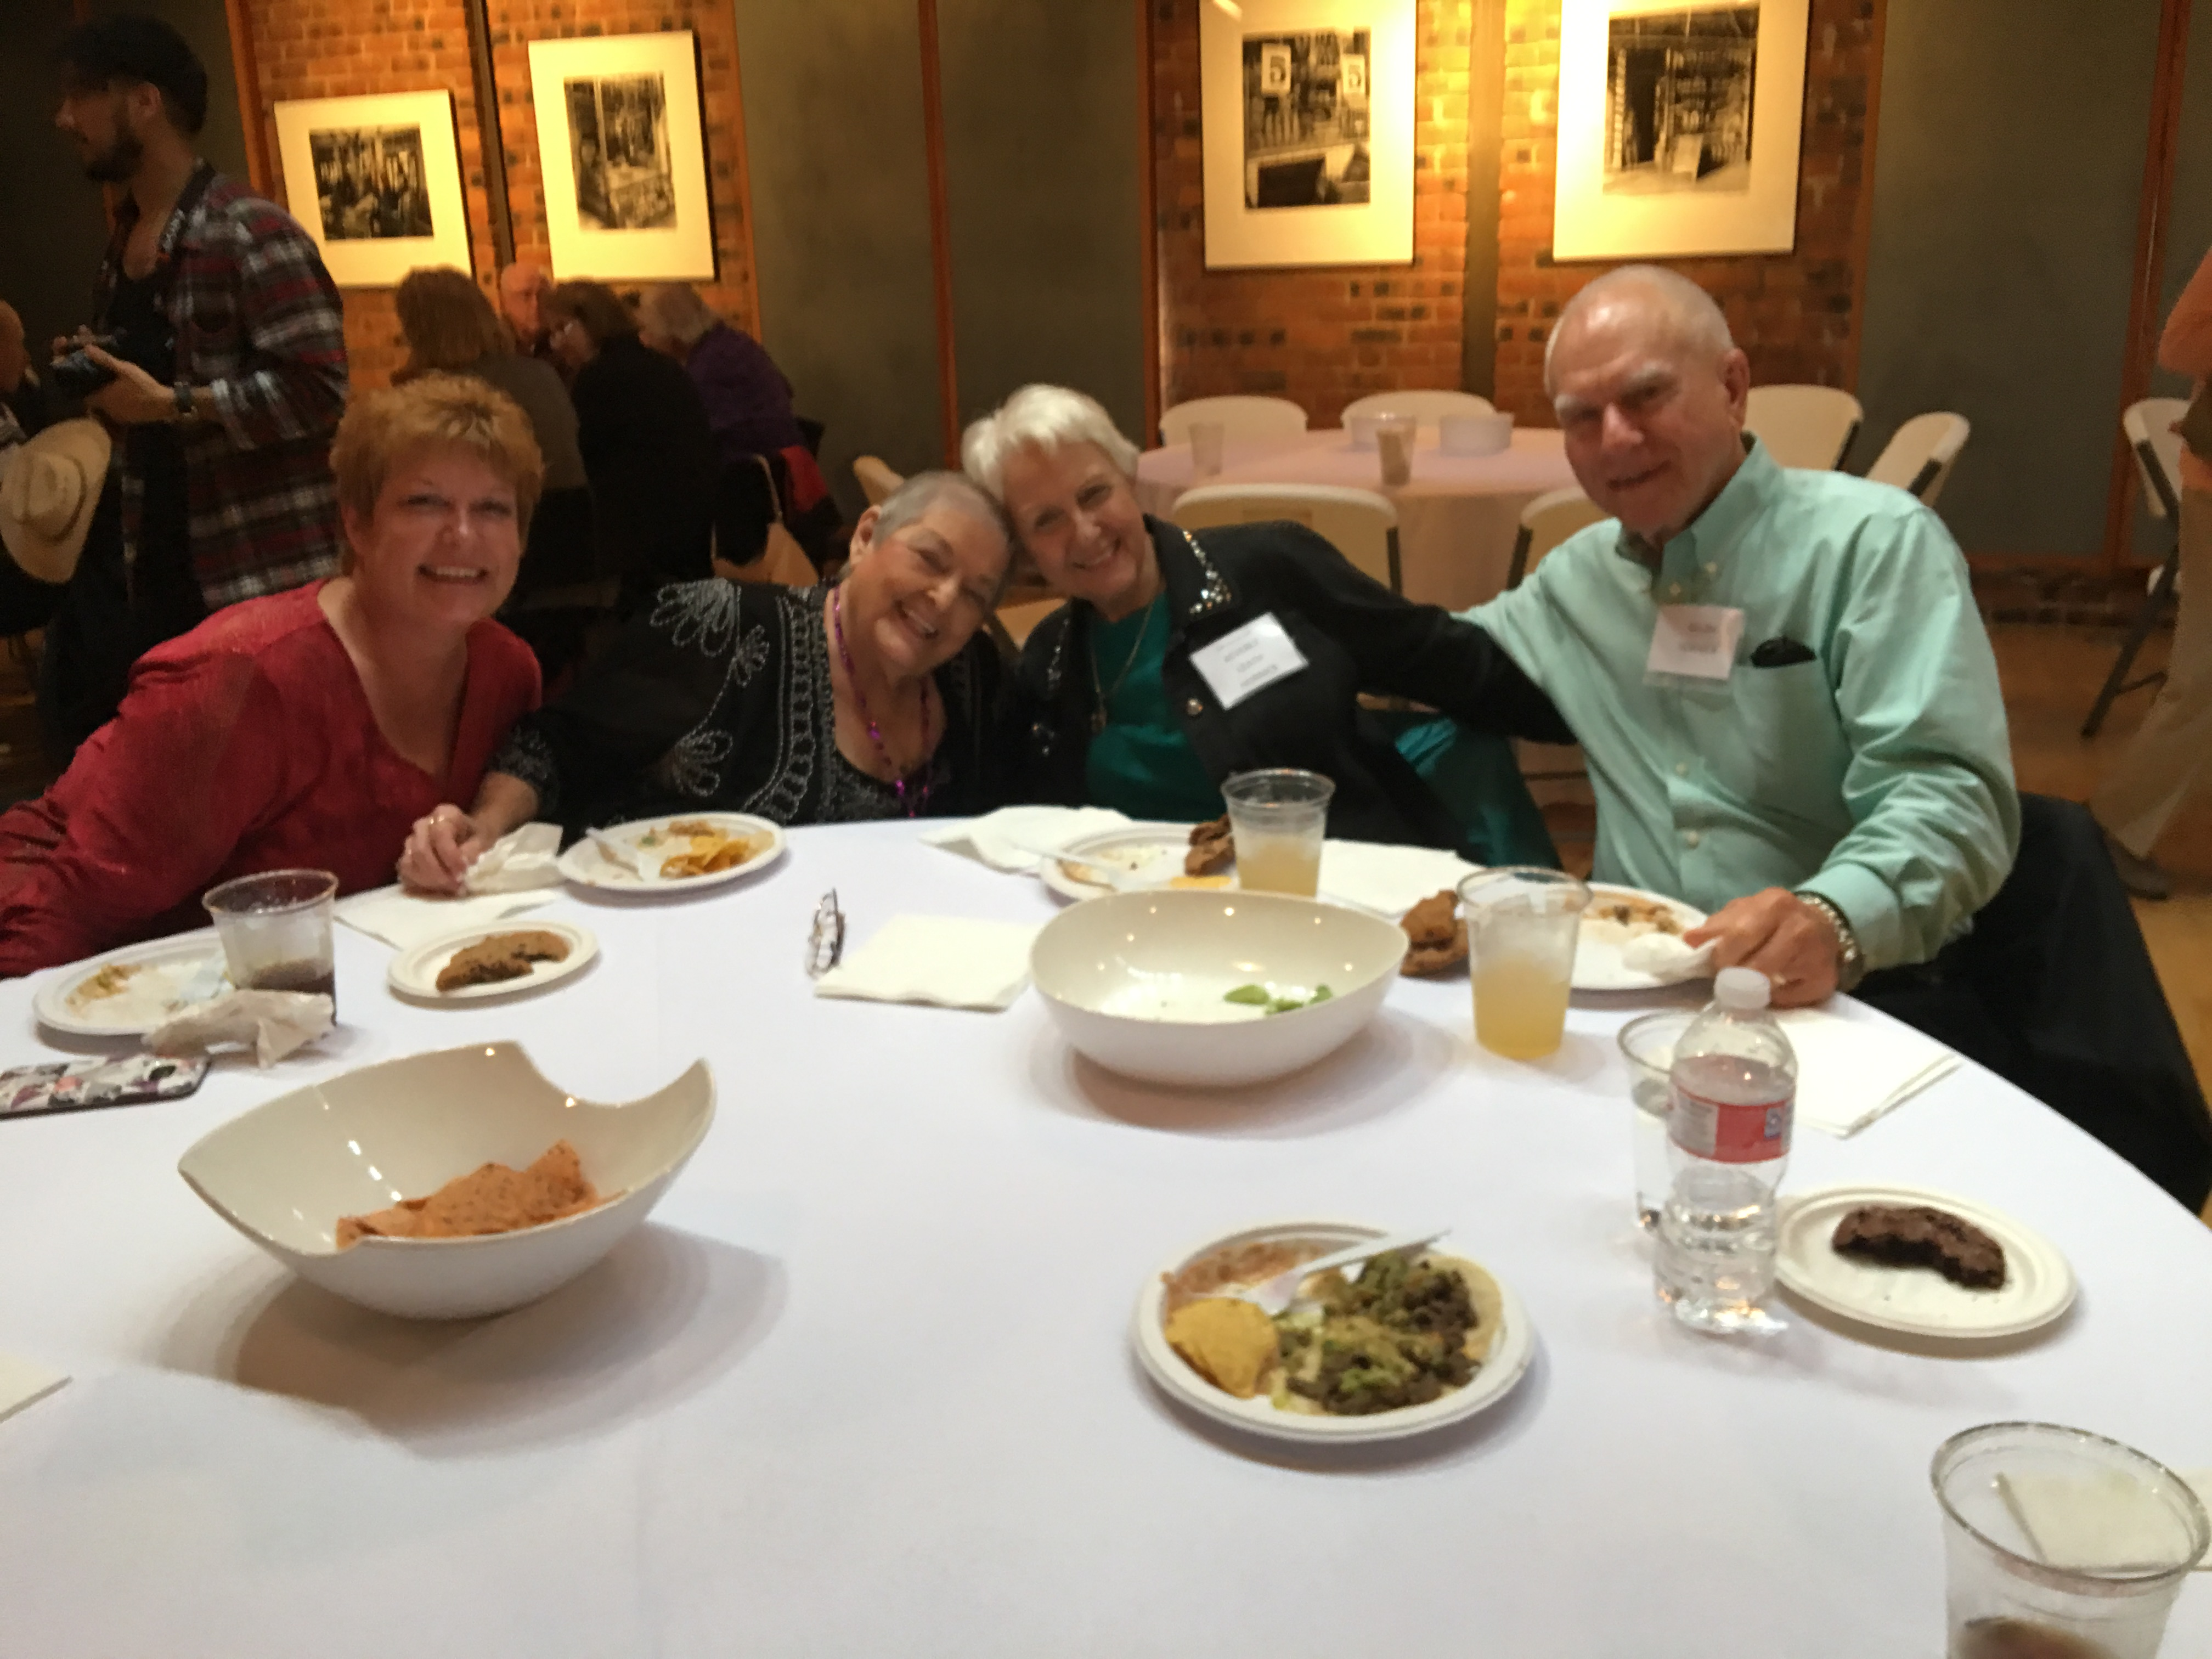 Marti Smith, Glenna Fawver Smith, Beverly Leath Hornick, Ralph Hornick